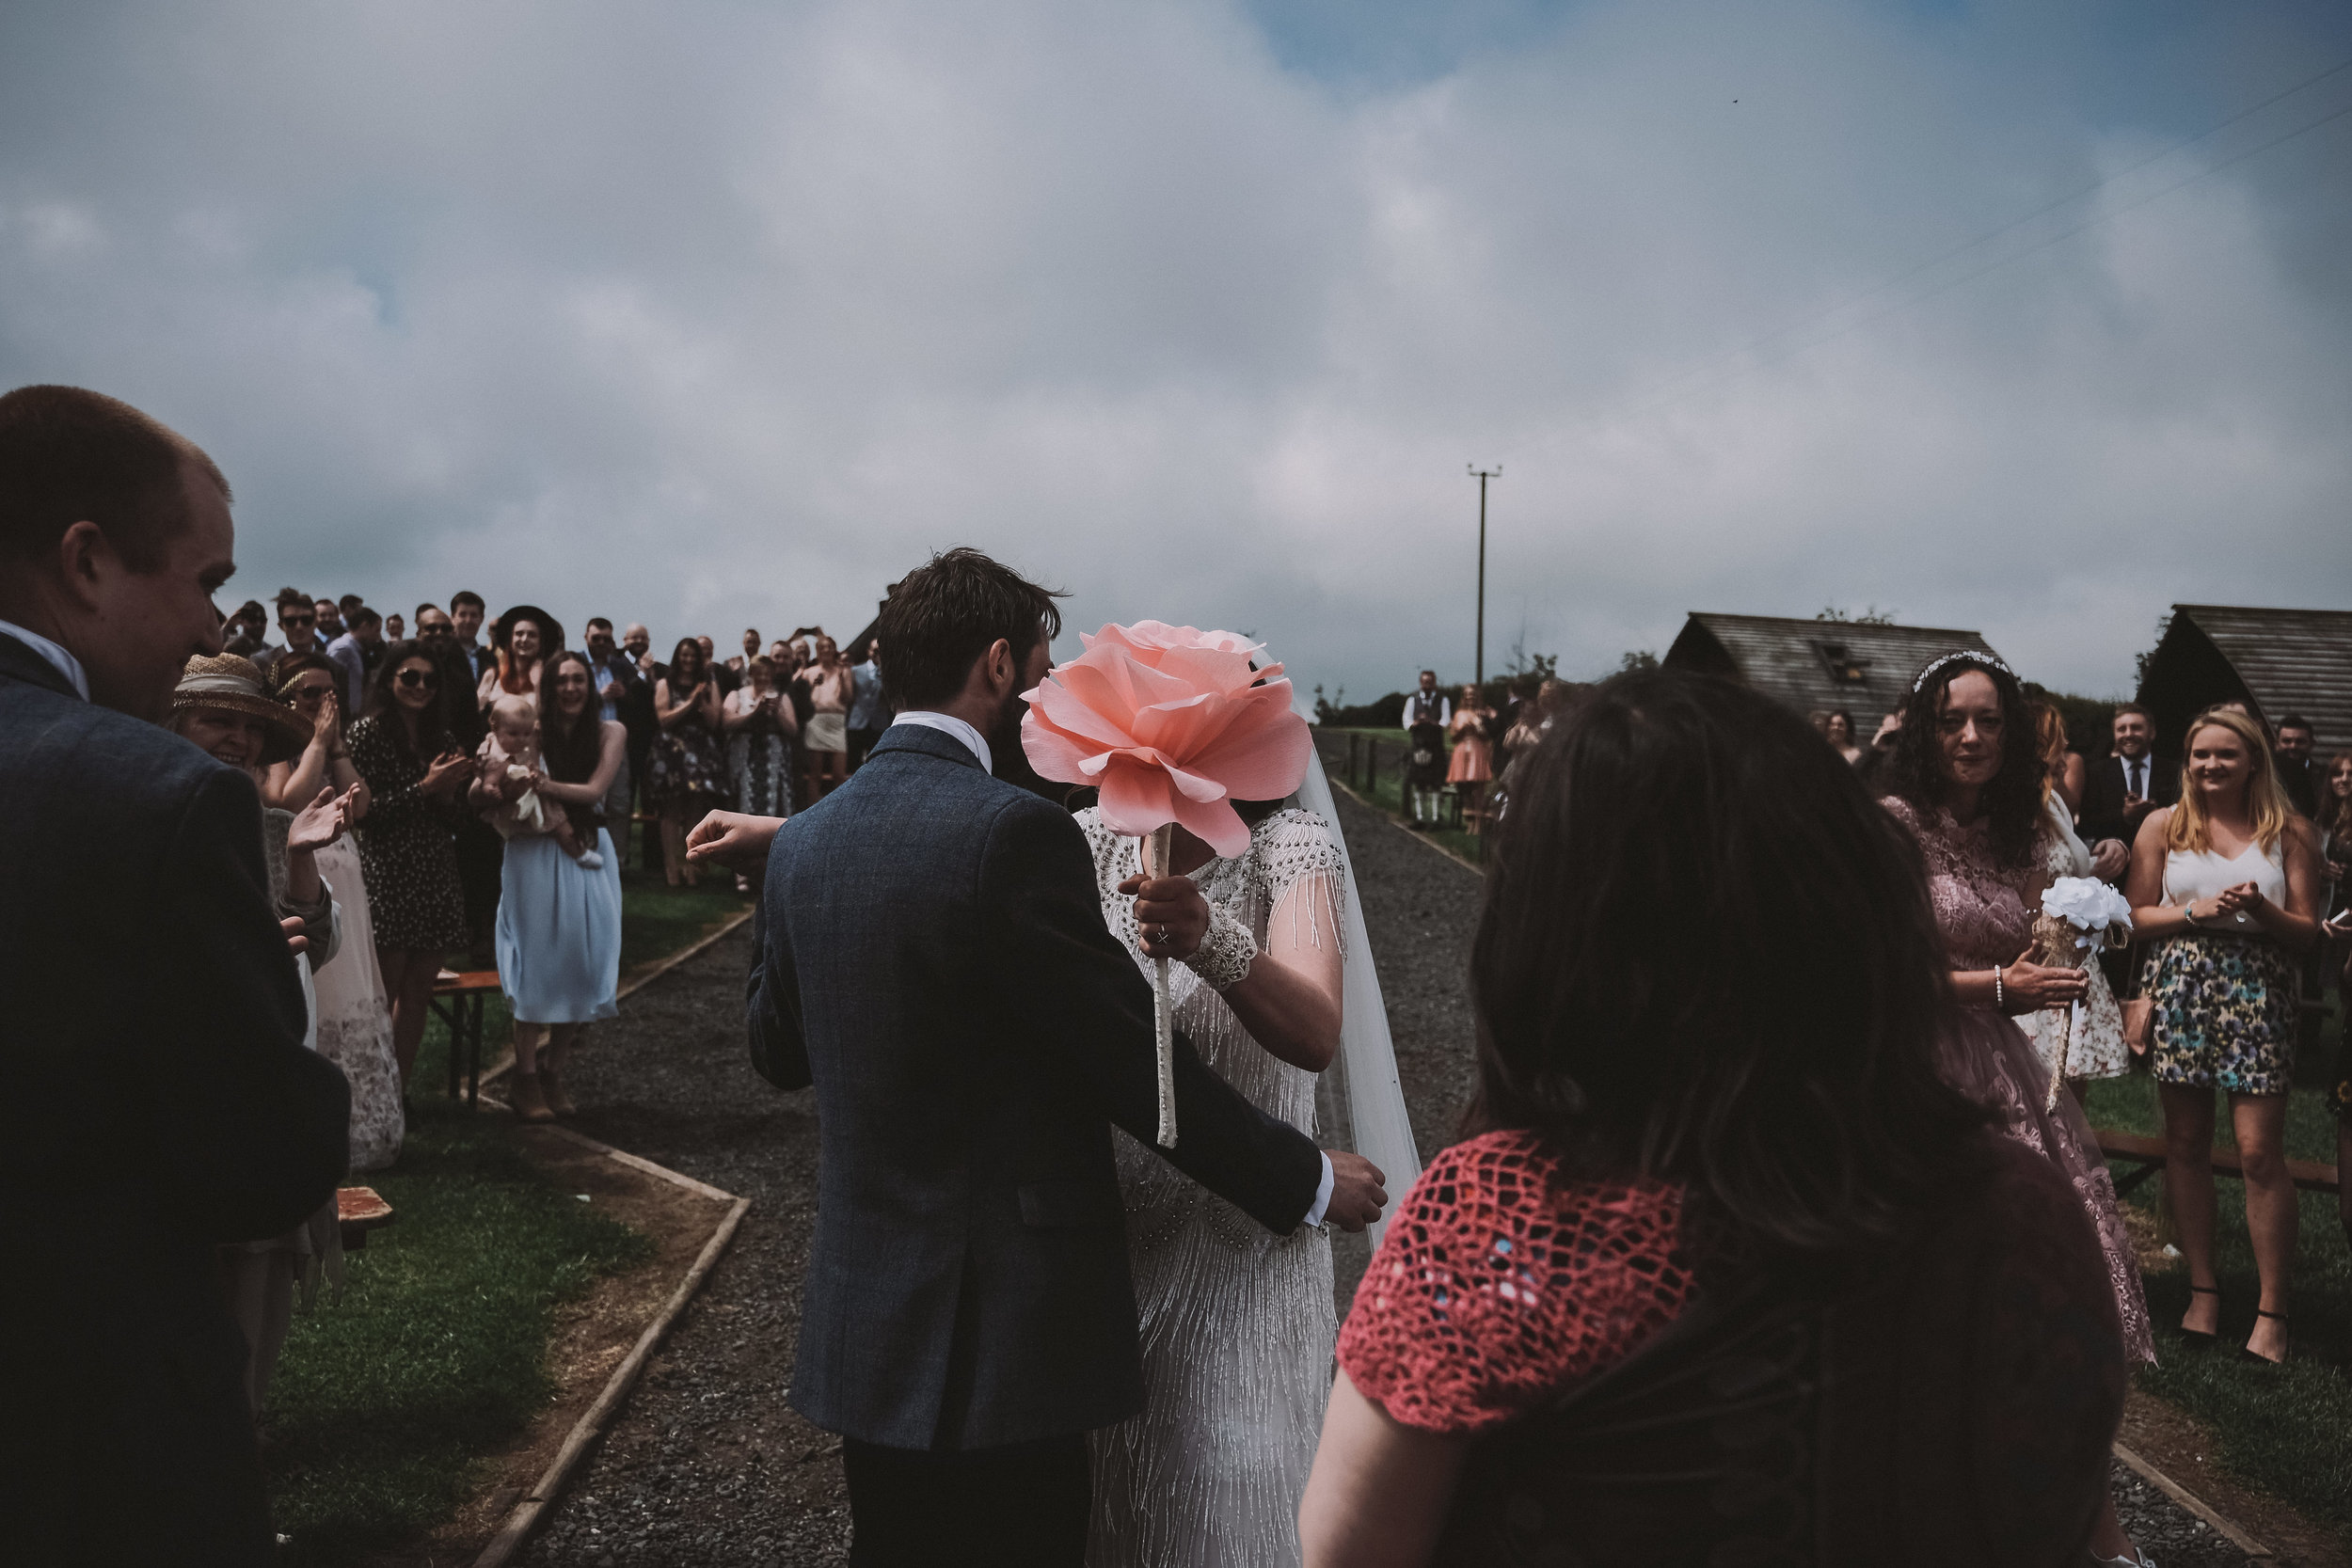 The bride and groom kiss at the start of their wedding ceremony obscured by the bride's giant flower